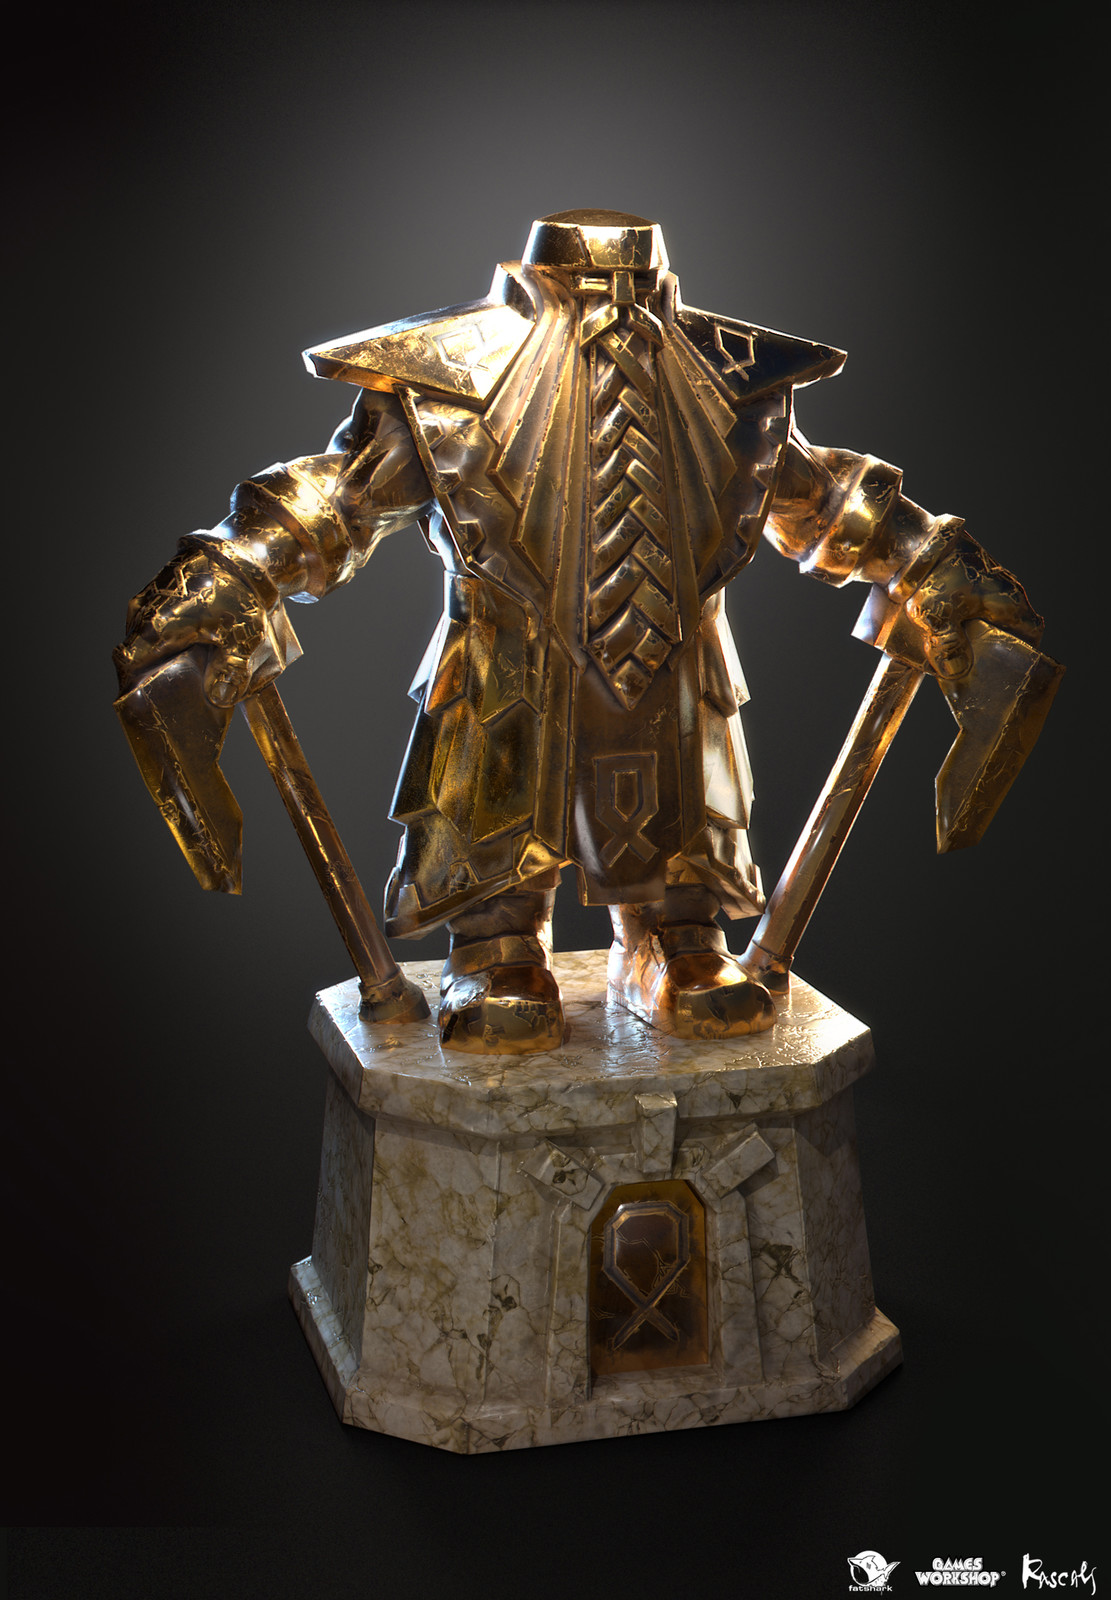 Rascals contributed to Fatshark's award-winning meelee action with a range of statues.